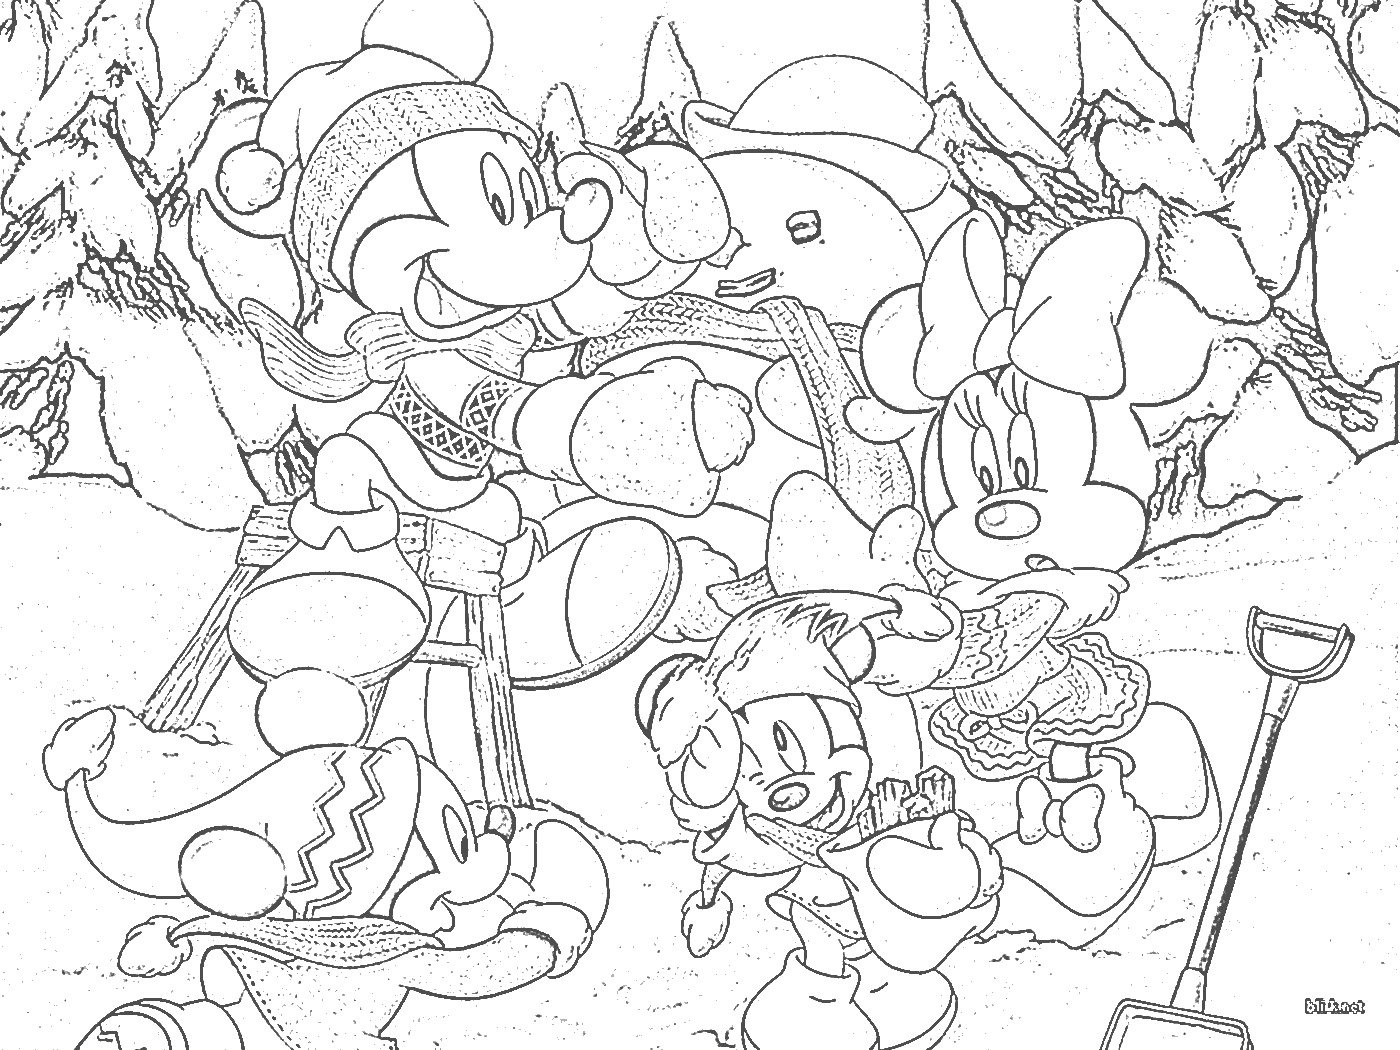 Disney Christmas Coloring Pages - Disney's World of Wonders